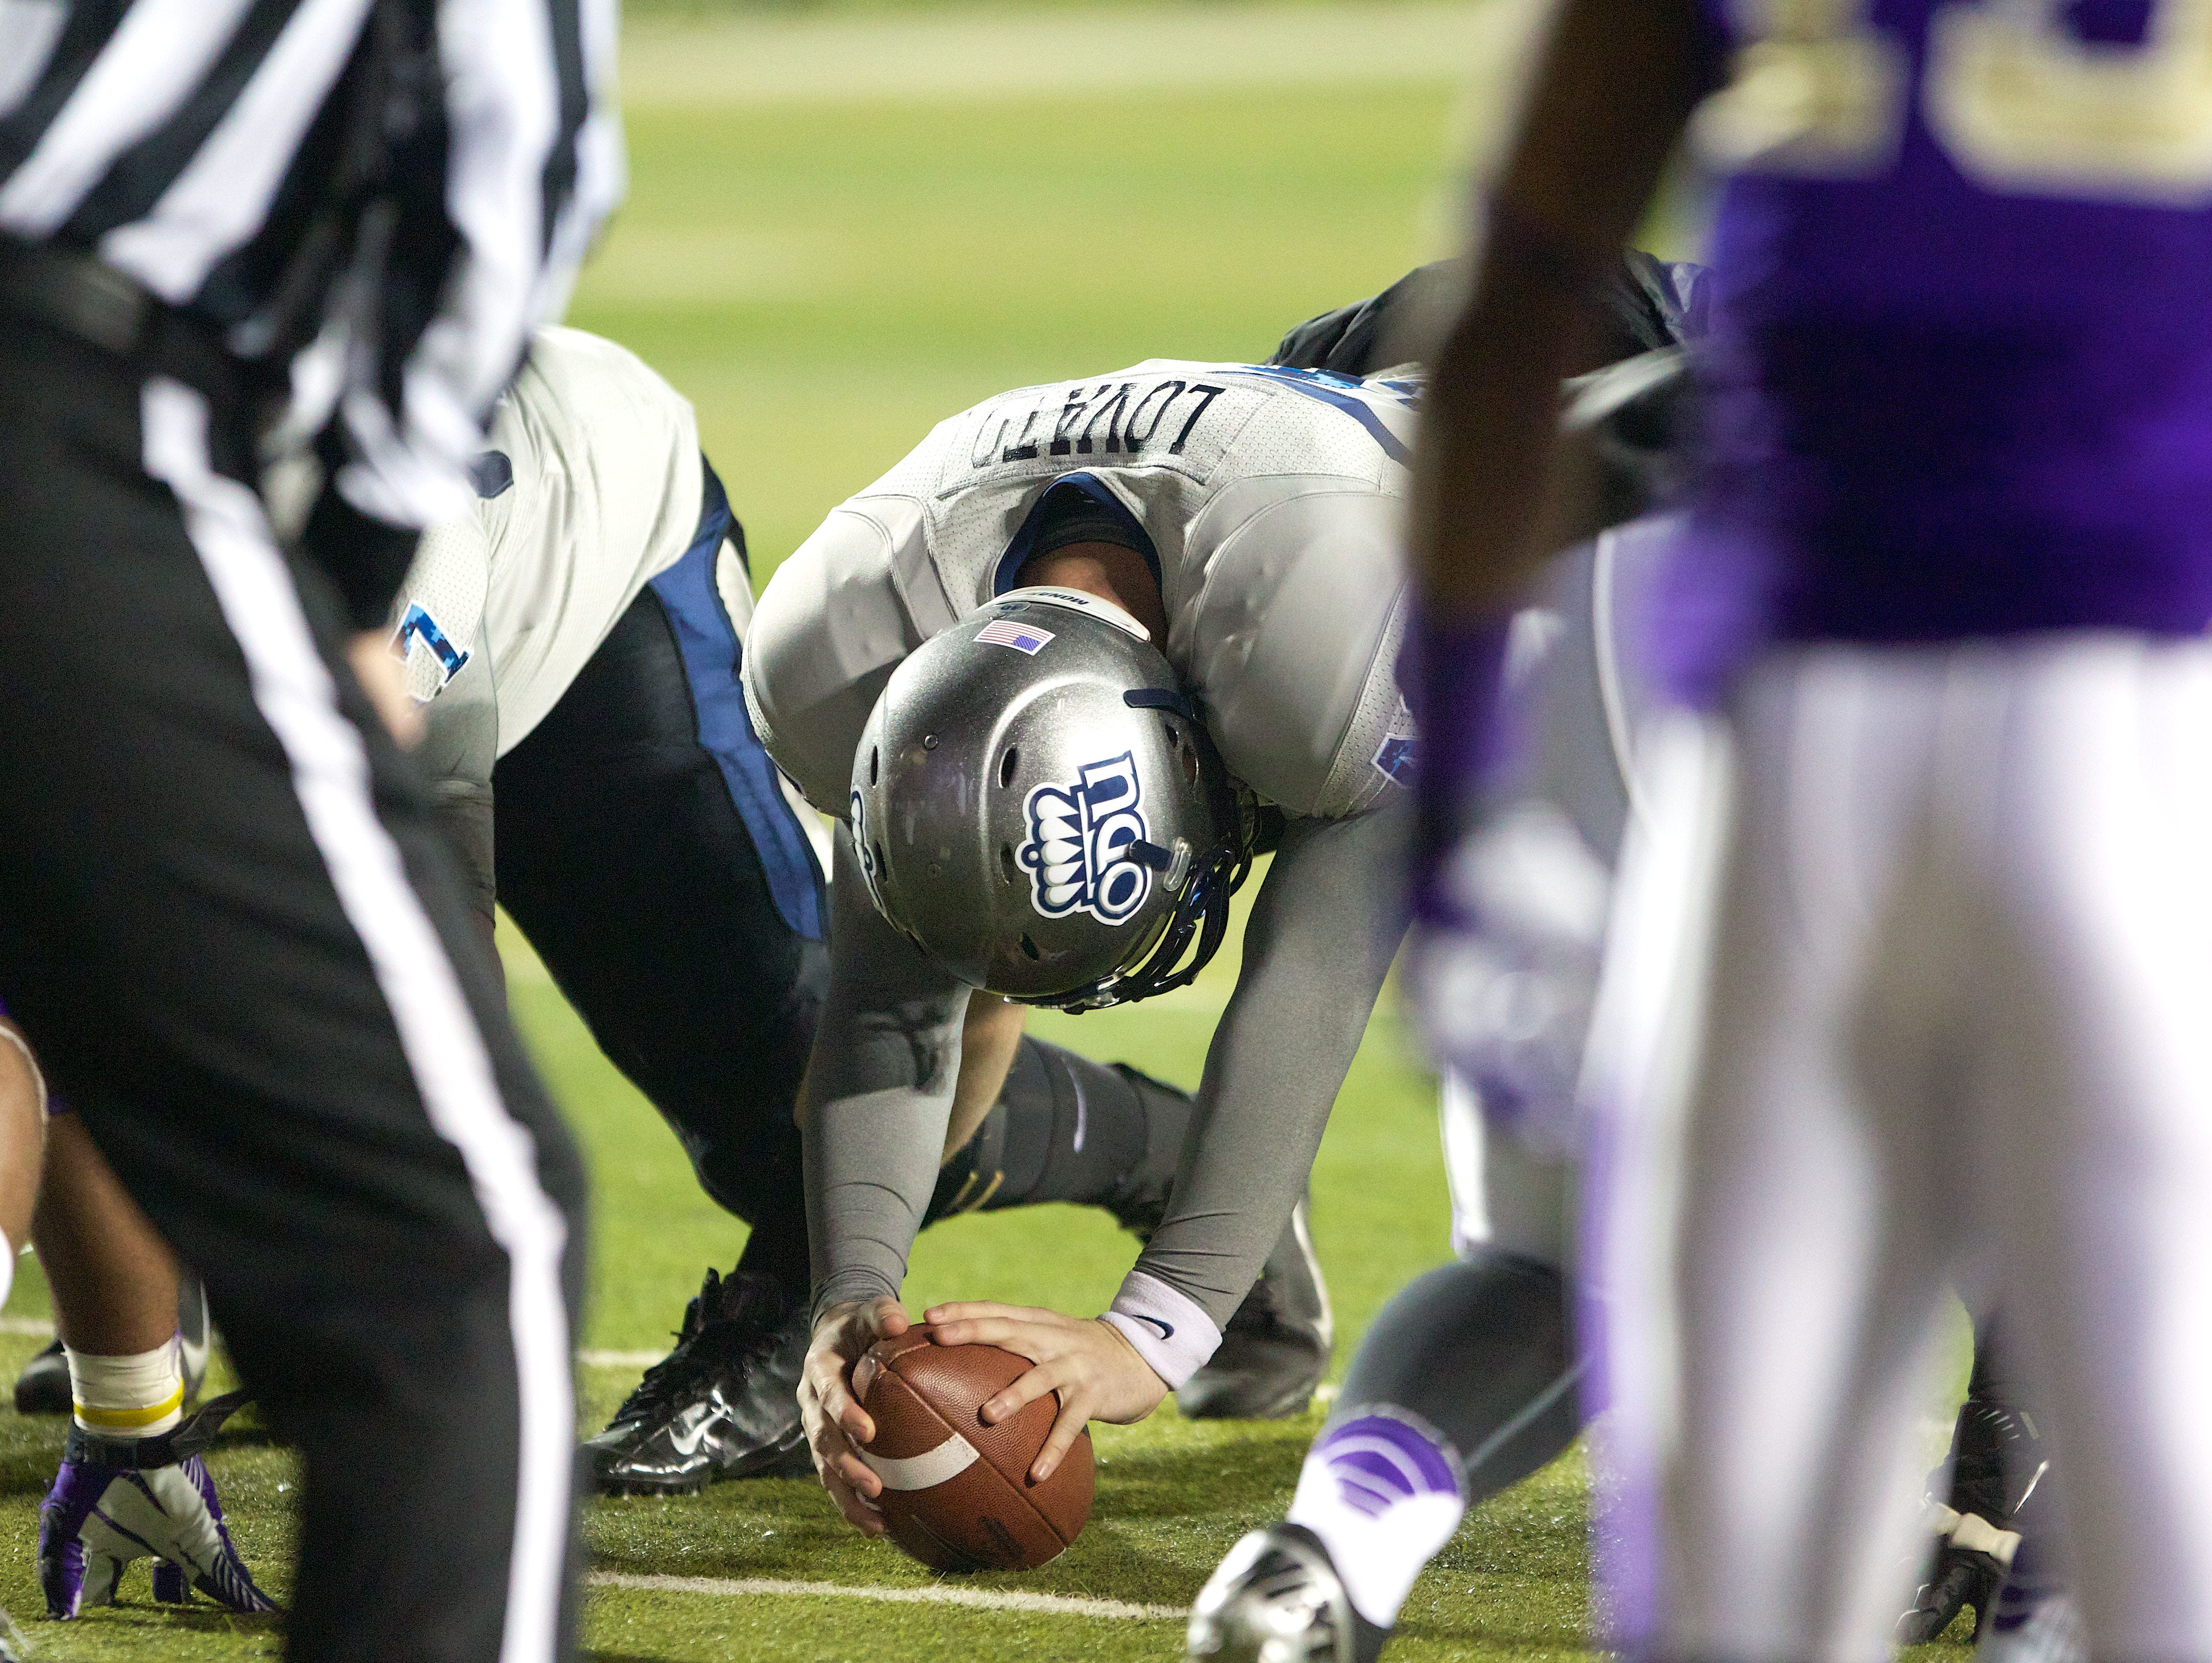 Former Middletown South standout Rick Lovato Jr., shown snapping the ball at Old Dominion, hopes to become the fifth Eagles' player to make it to the NFL.